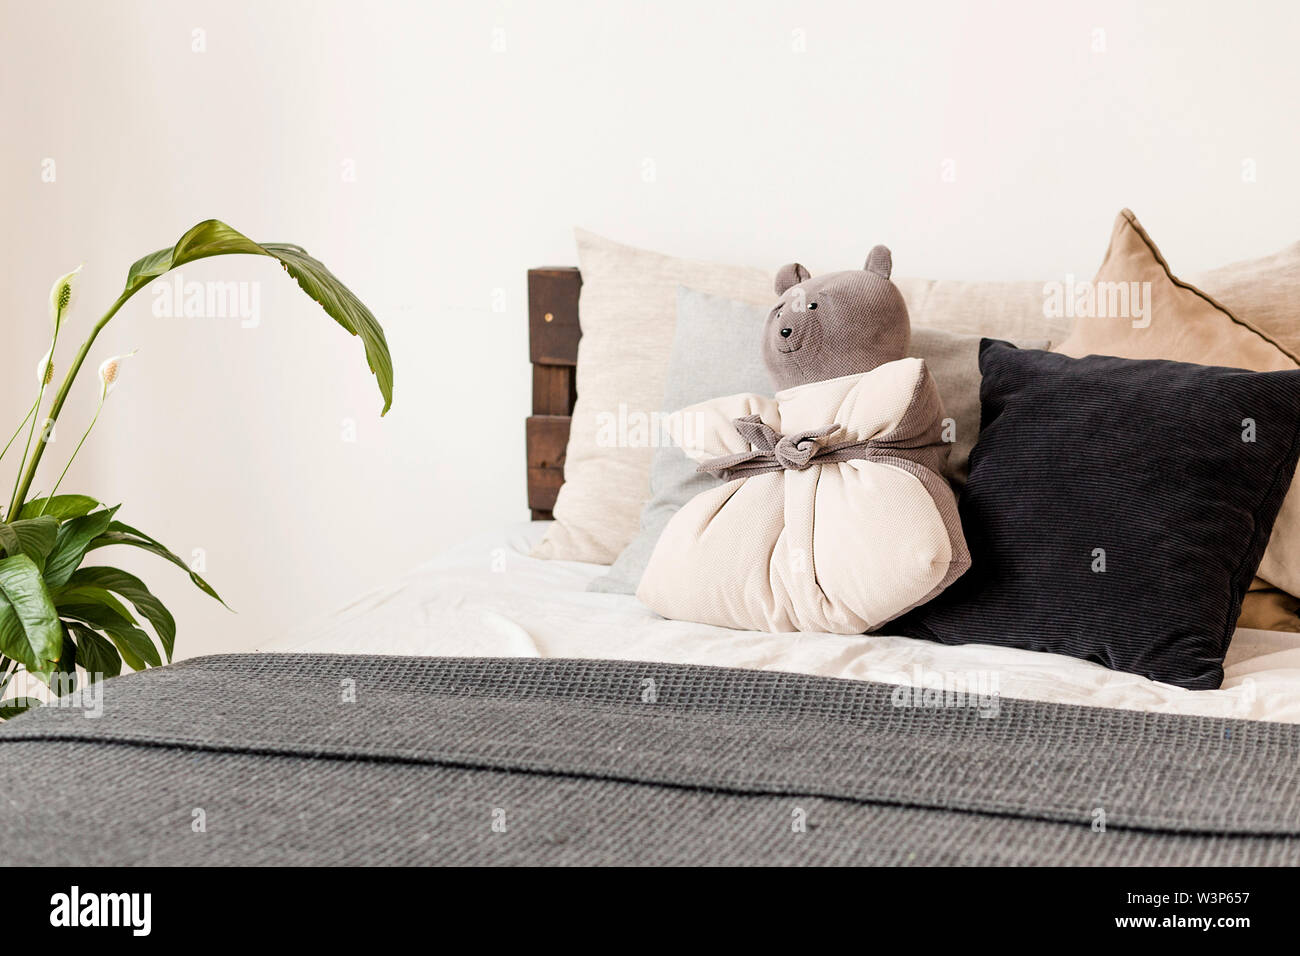 Photo de l'oreiller sous la forme d'un ours couché sur le lit Photo Stock